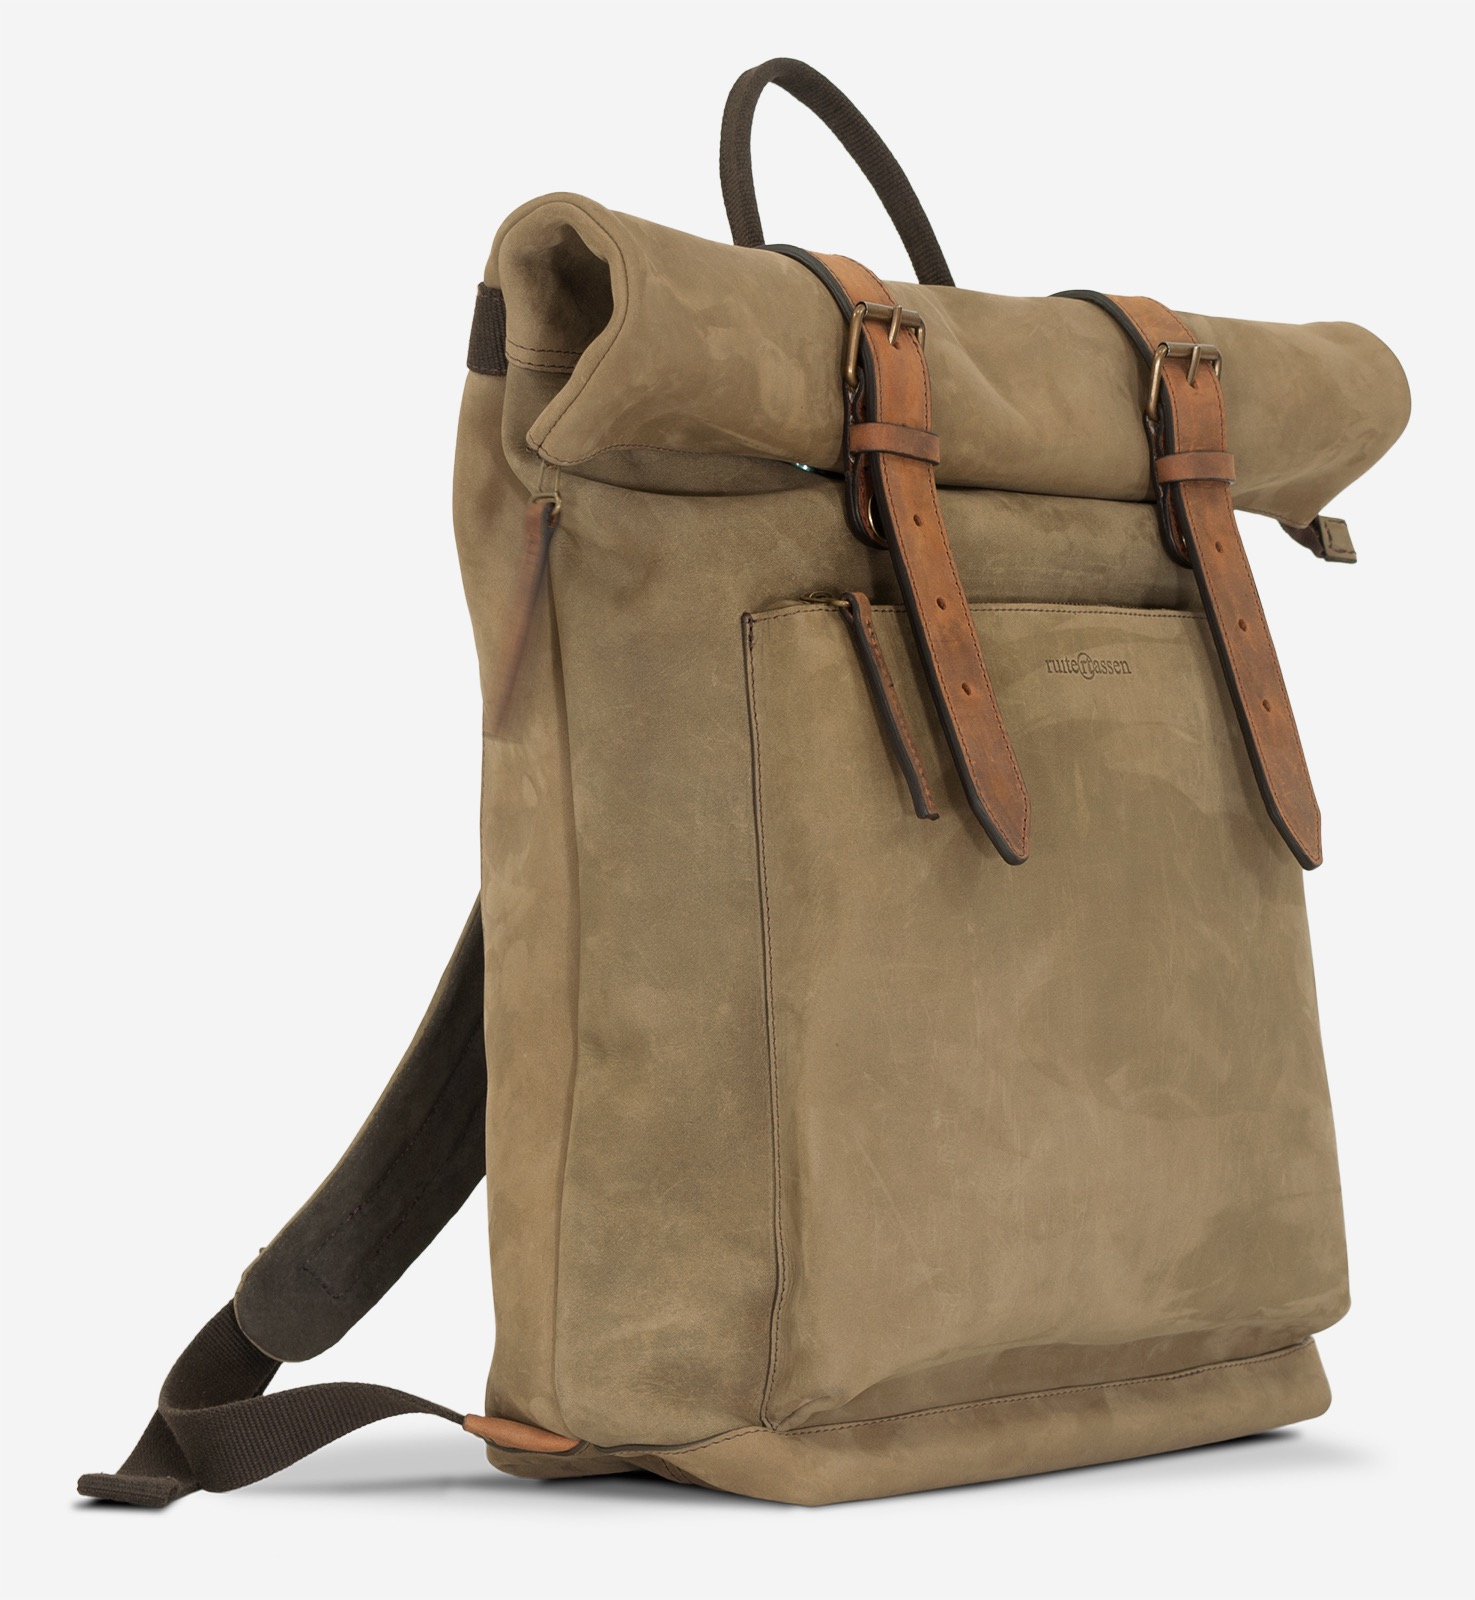 Side view of the roll-top soft leather backpack.